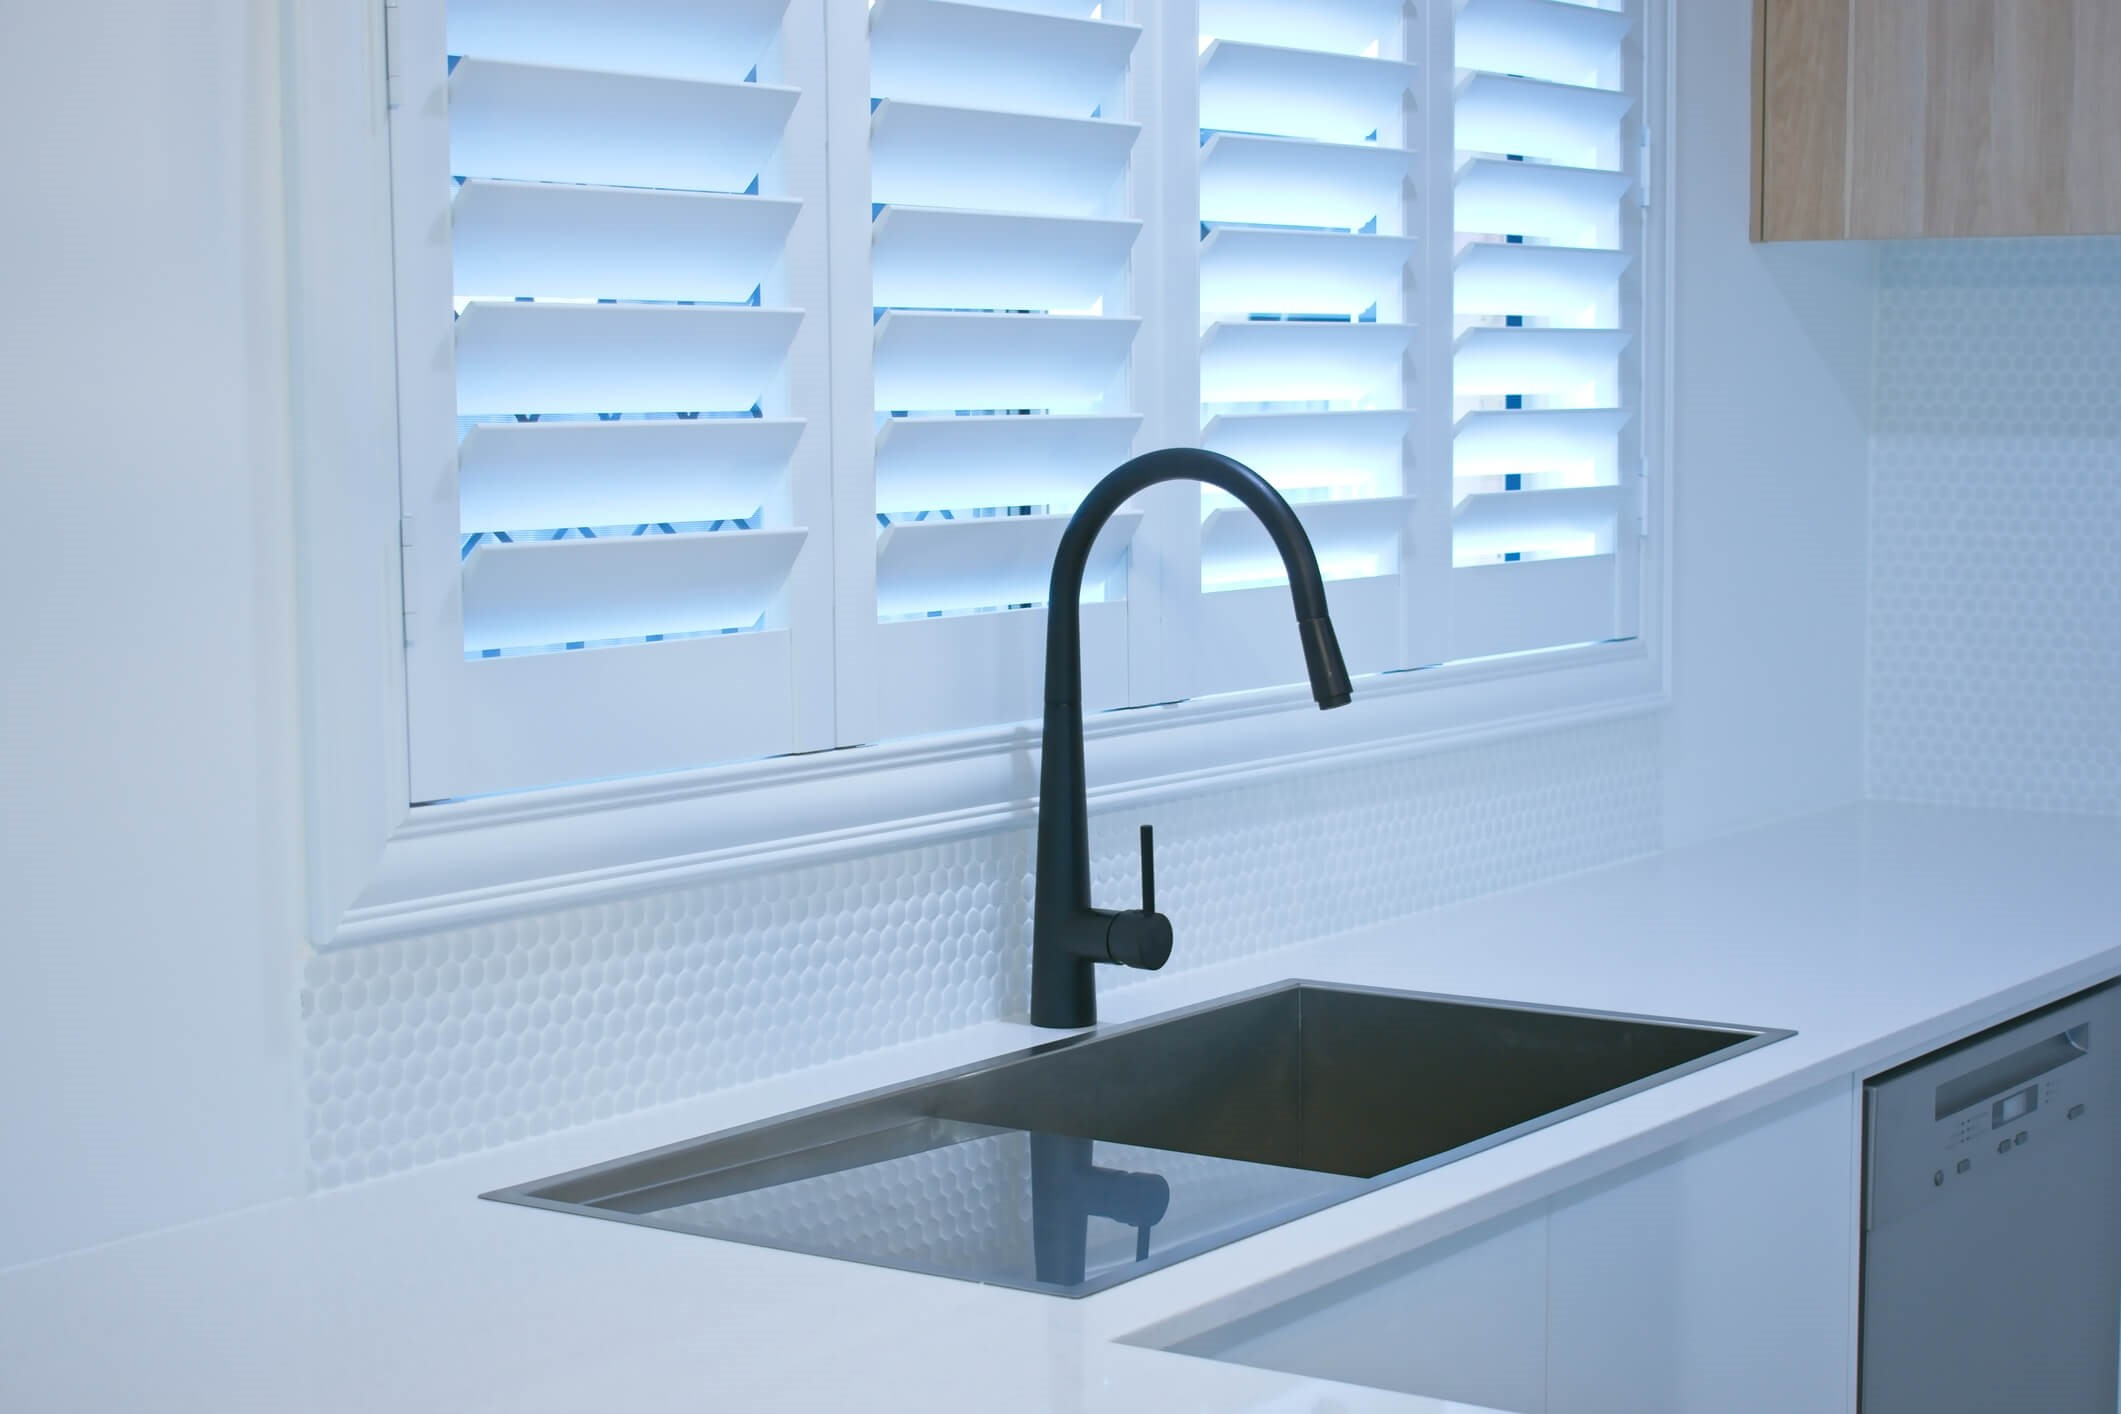 white window shutters with black tap in kitchen